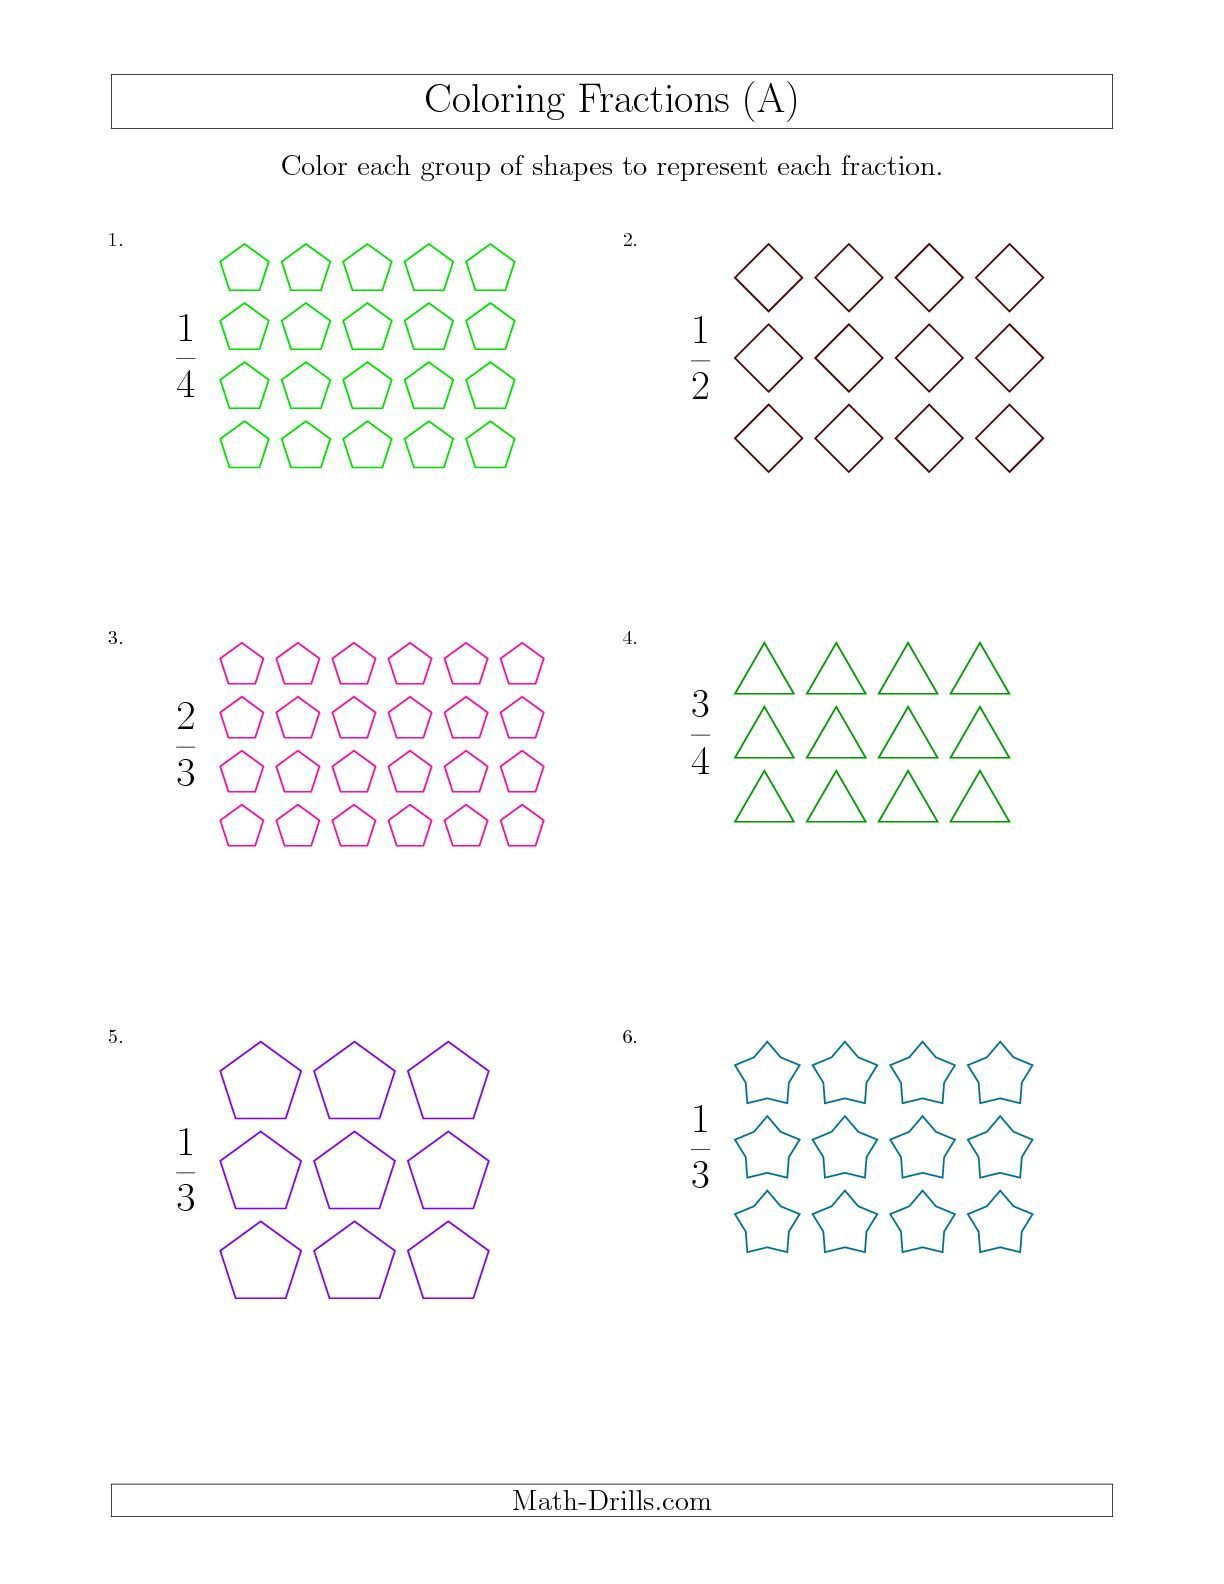 hight resolution of The Coloring Groups of Shapes to Represent Fractions (A) math worksheet  from the Math Worksheet page at Math-Drills.com.   Fractions